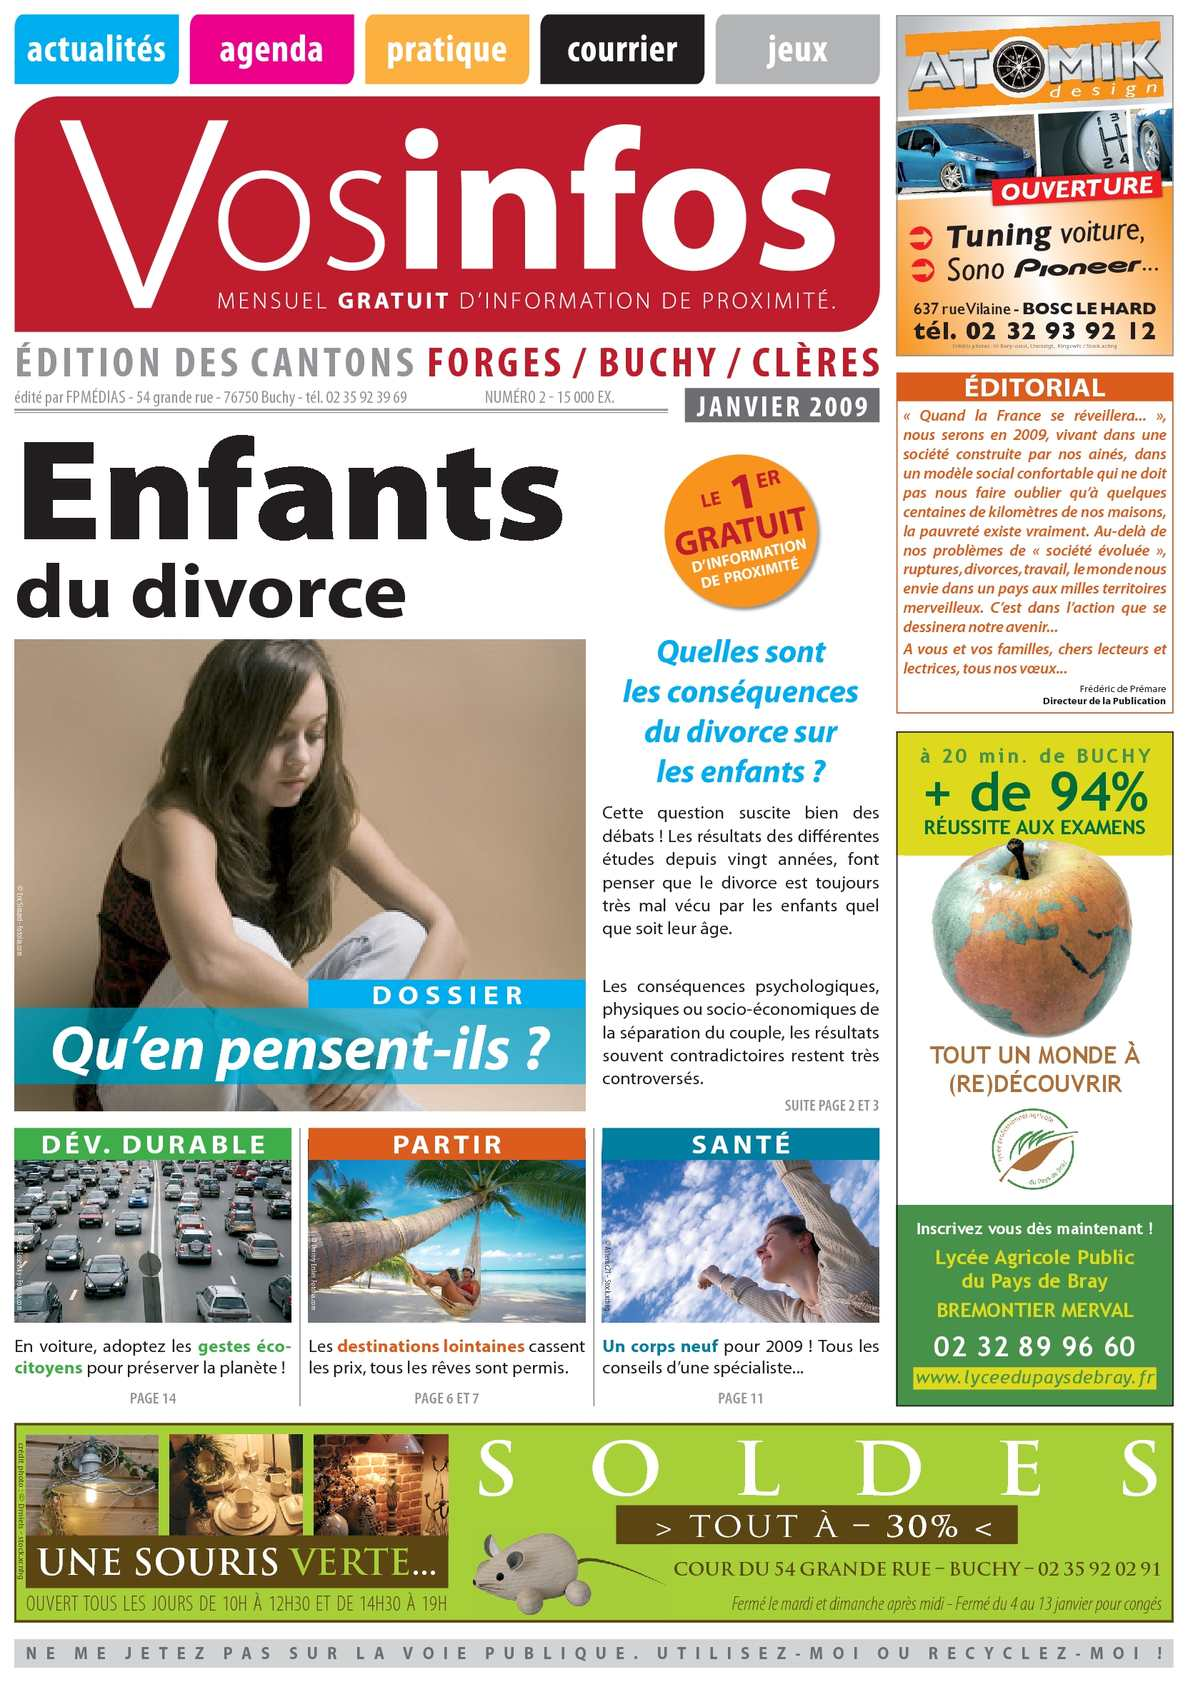 calam o journal vosinfos n 02 edition forges buchy cl res janvier 2009. Black Bedroom Furniture Sets. Home Design Ideas